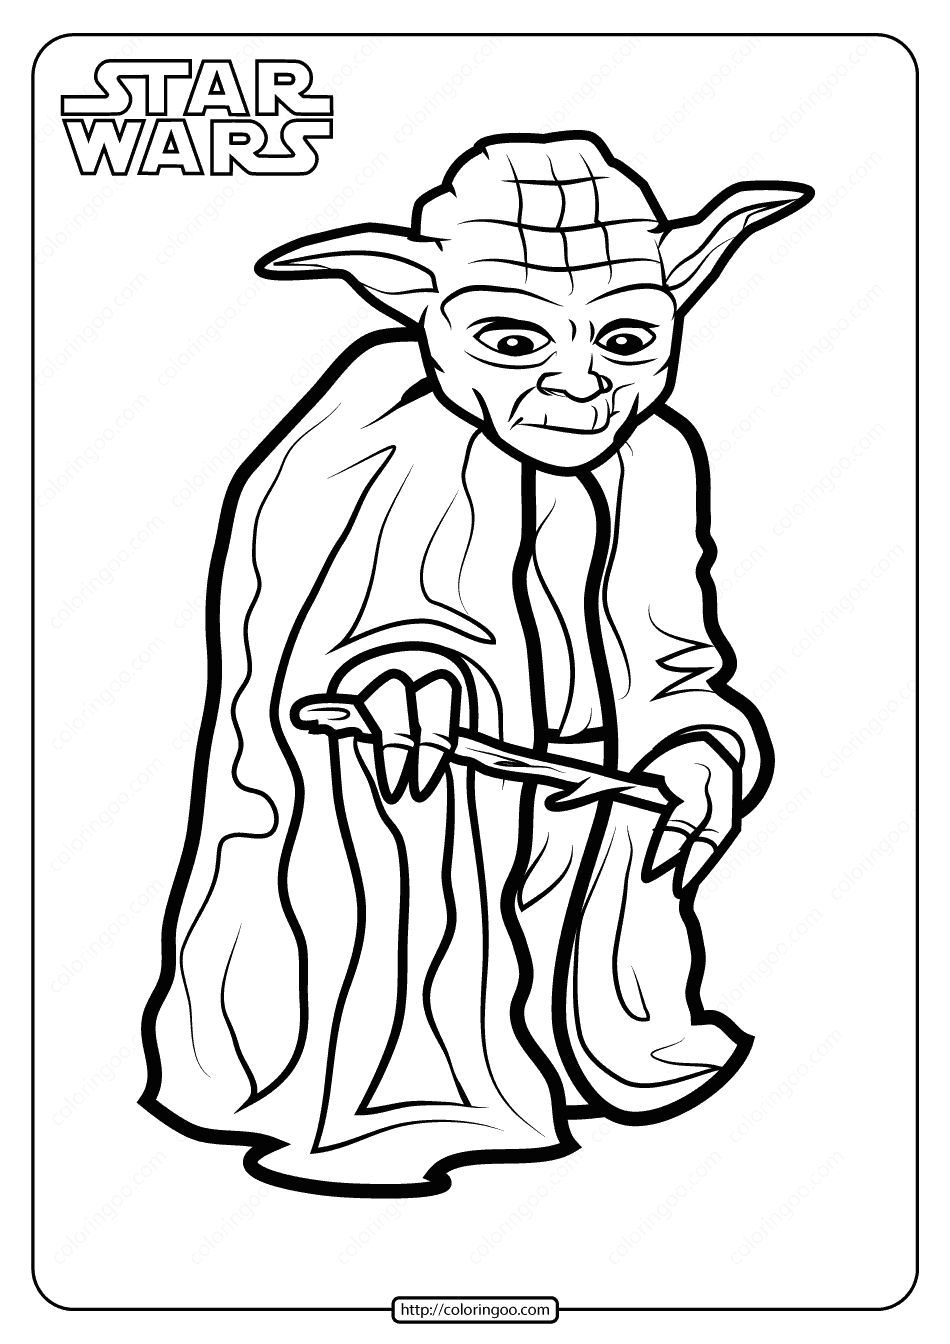 yoda colouring pages baby yoda coloring pages 44 new images free printable pages colouring yoda